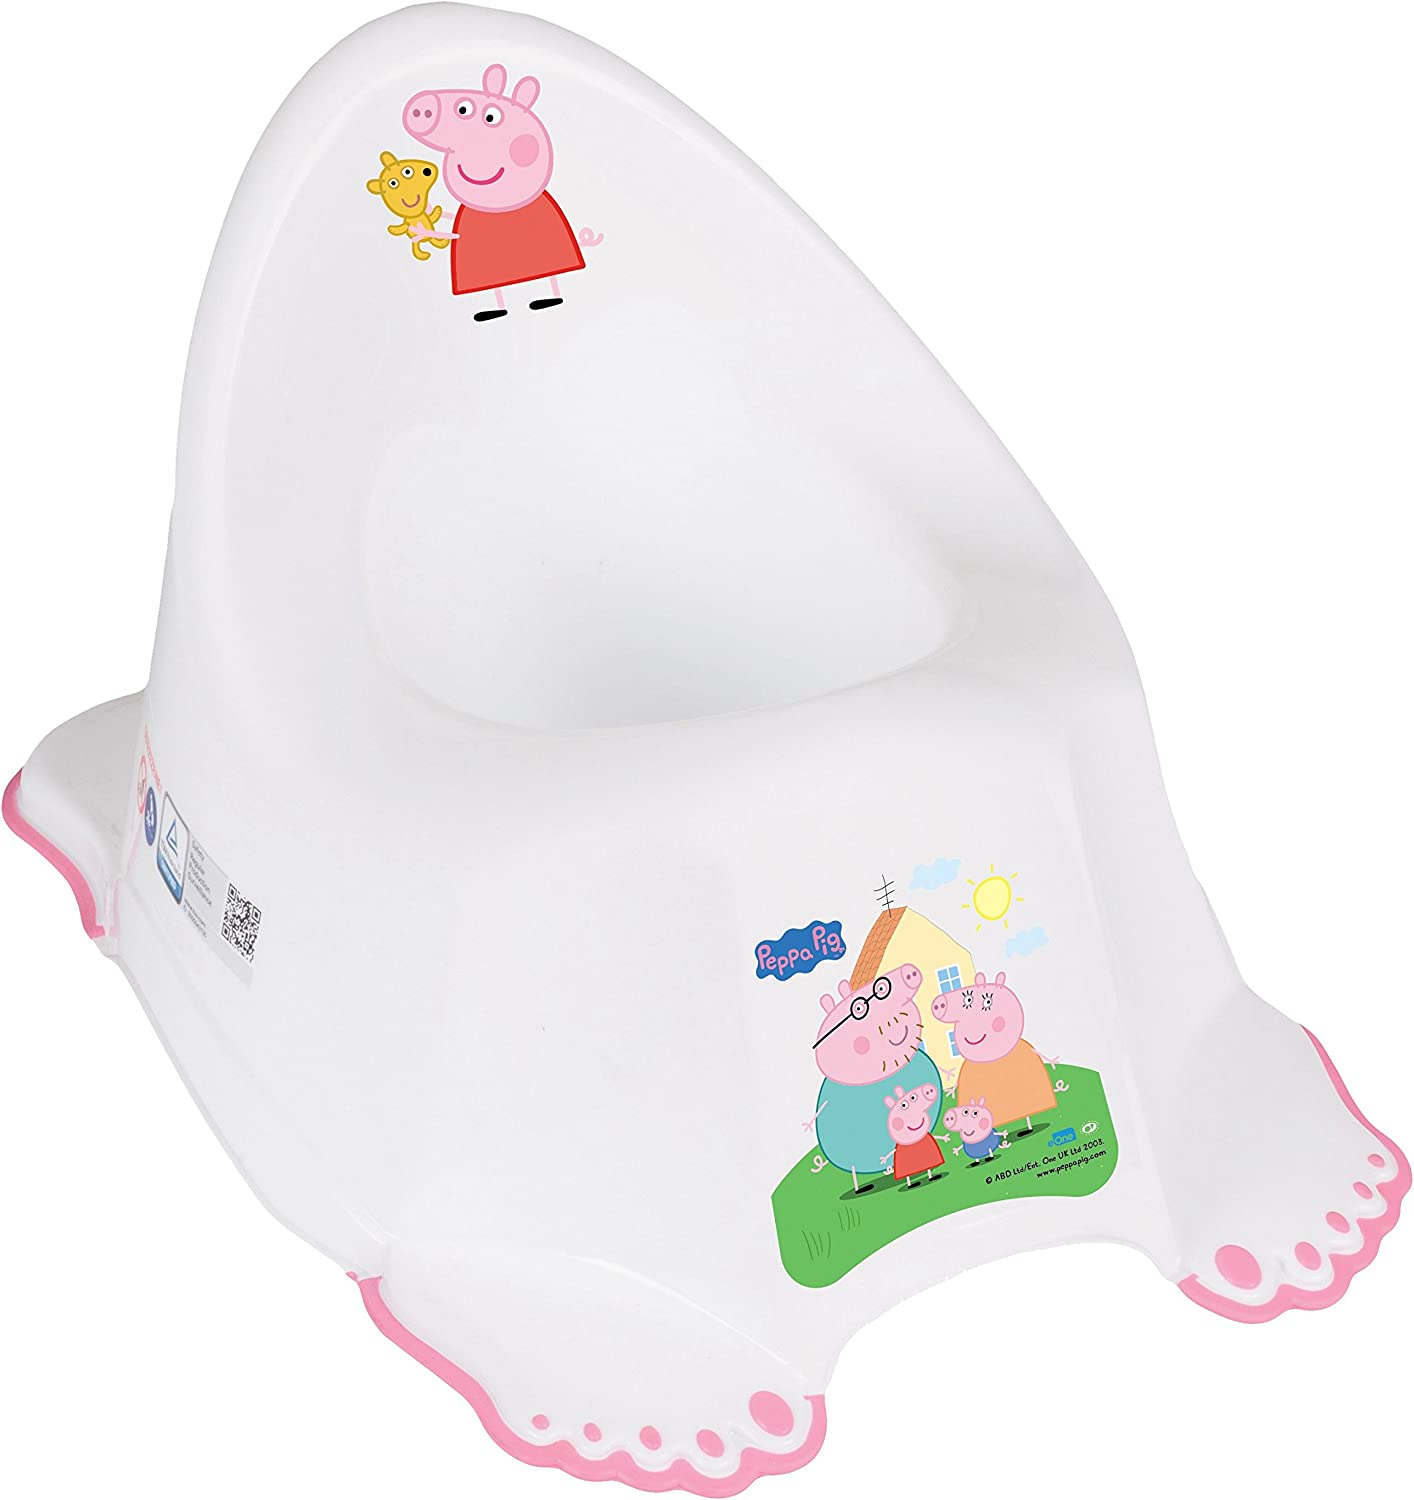 Peppa Pig Large Musical Non-Slip Potty Colourful Design Pink